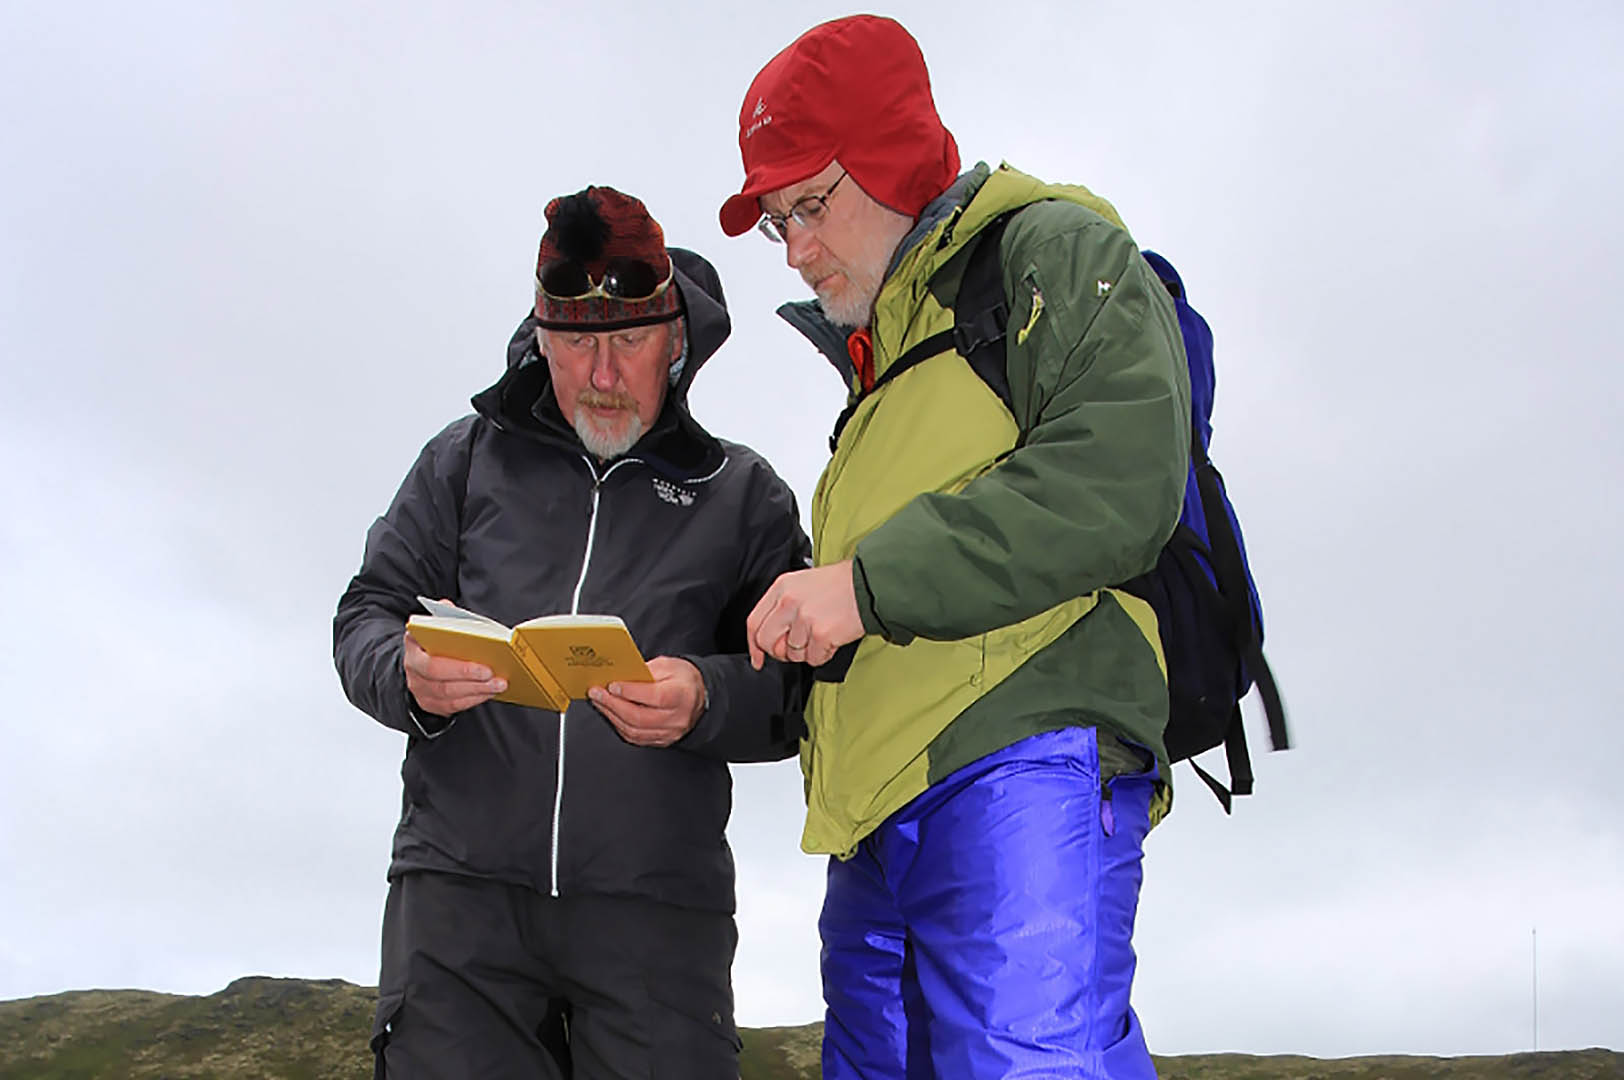 Professors Michael Retelle, at left, and William Ambrose on the island of Ingøya, Norway. (© Randall Hyman)